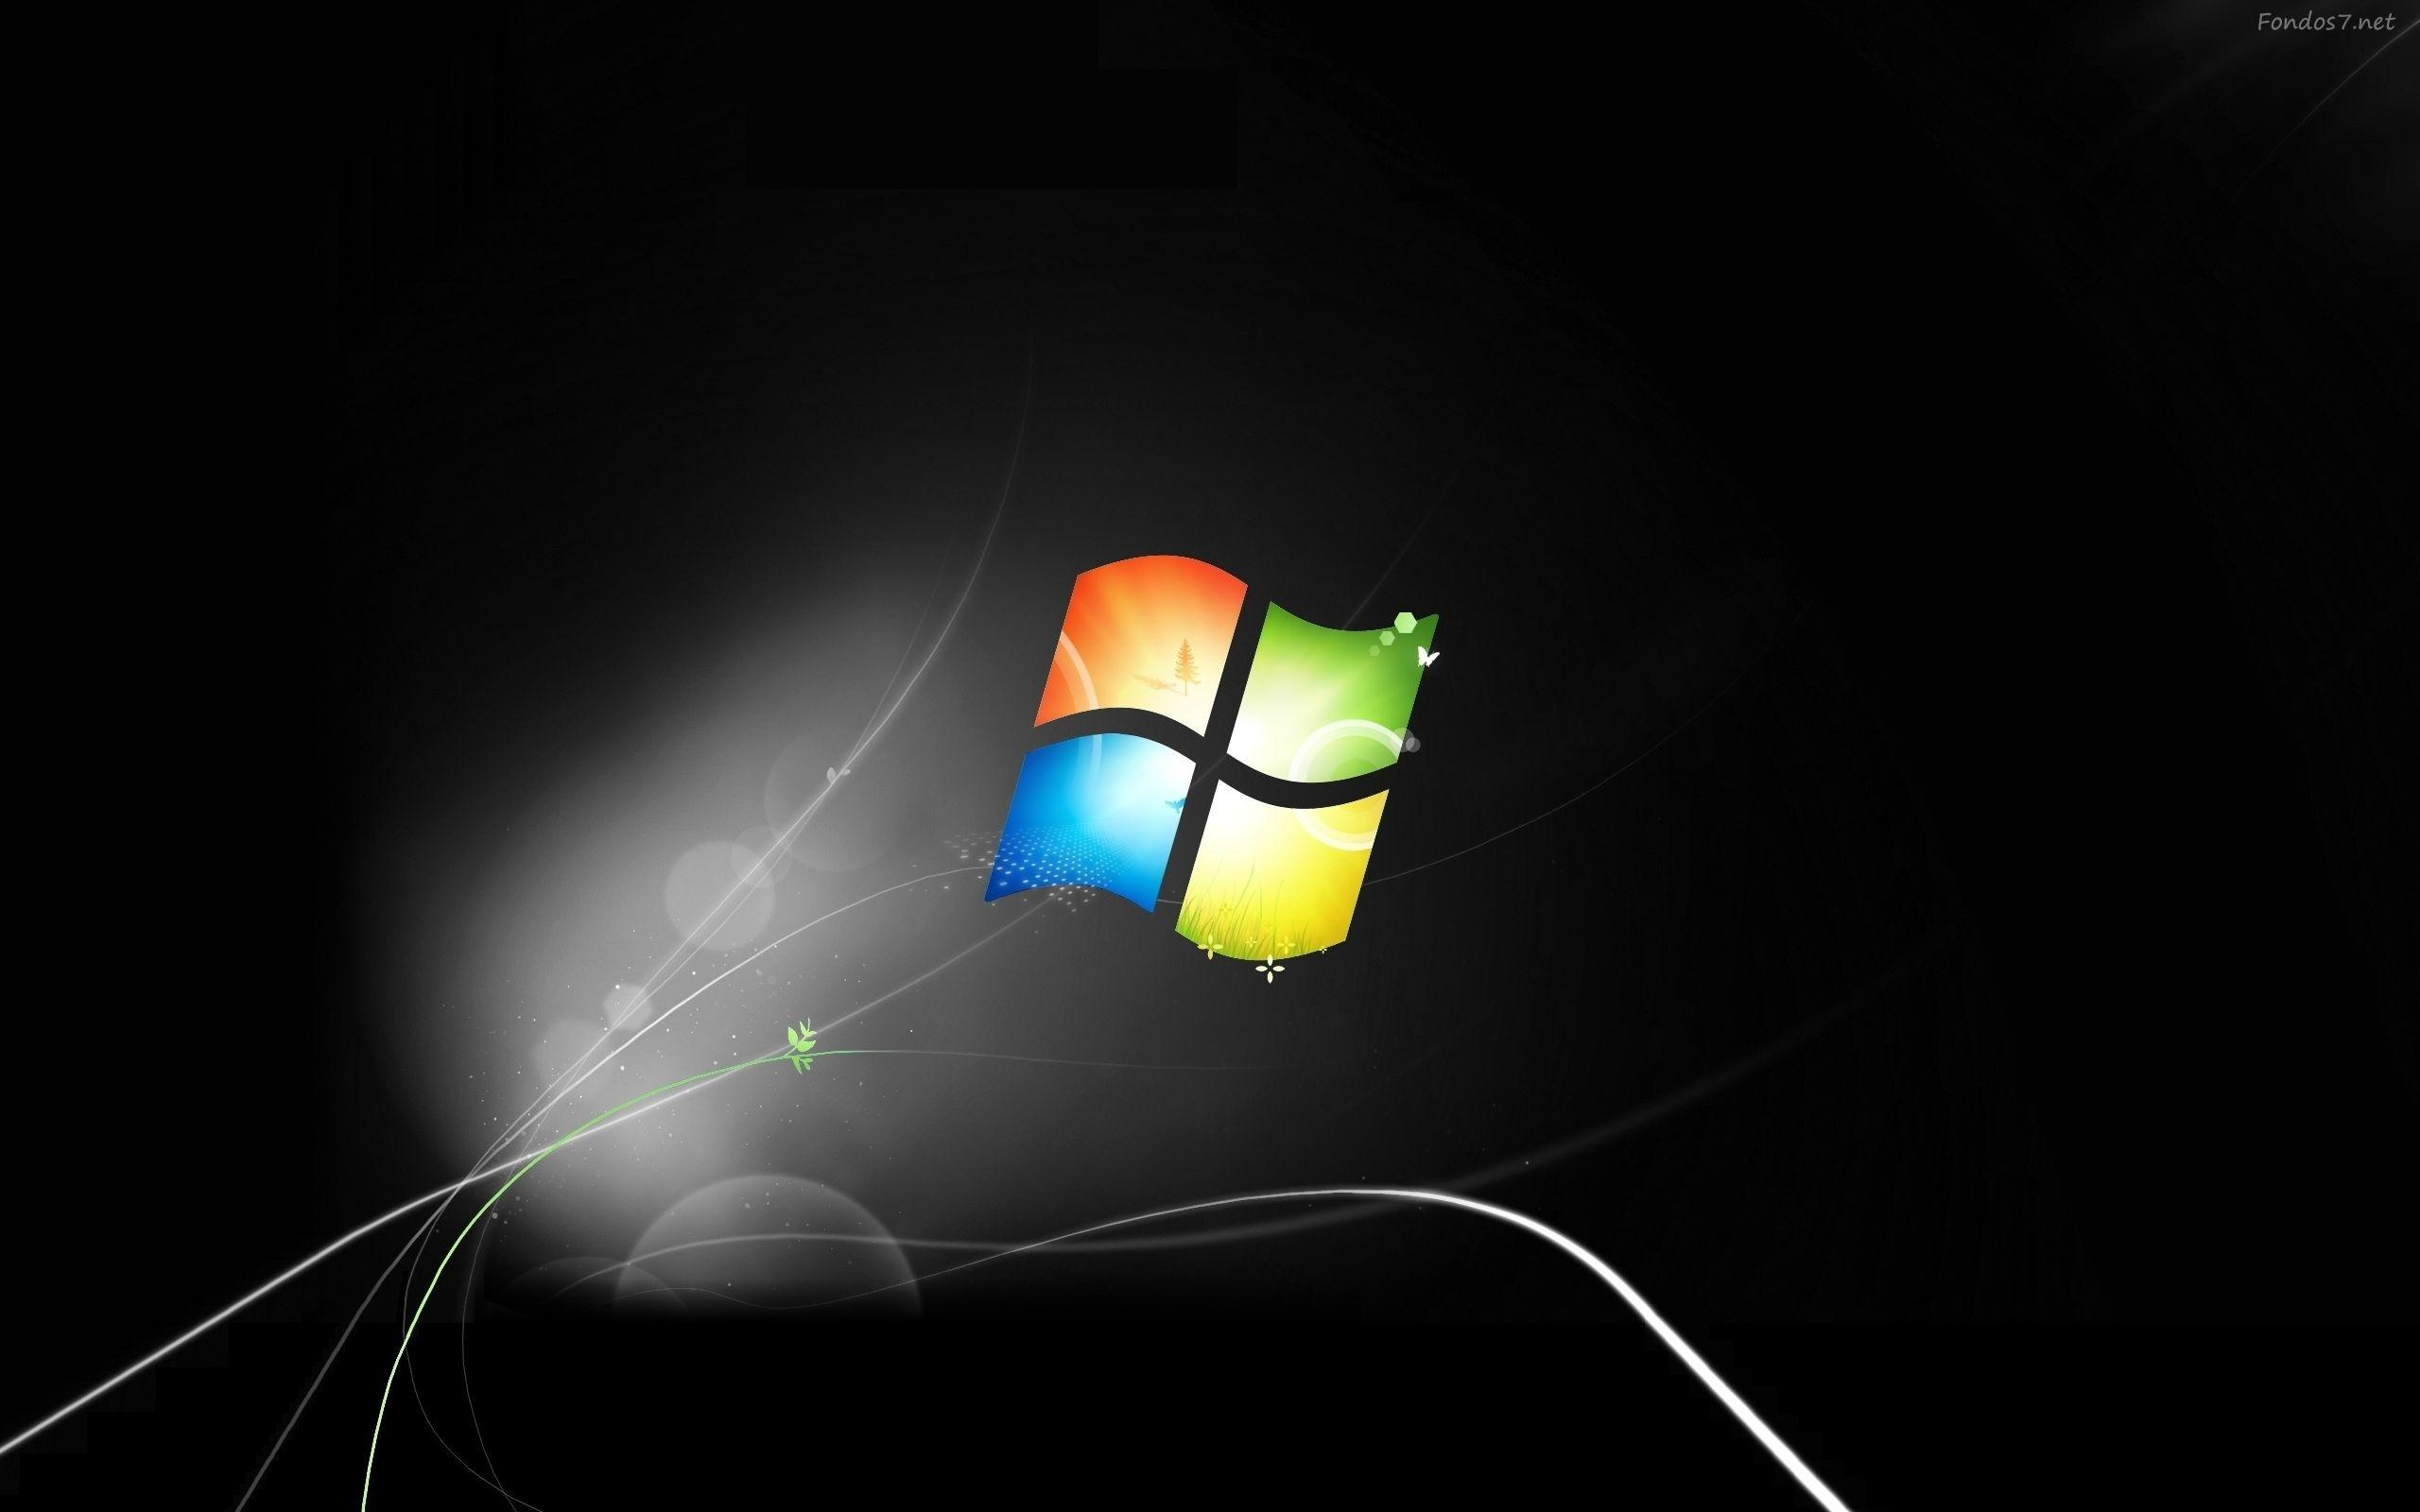 windows 7 dark wallpapers - wallpaper cave